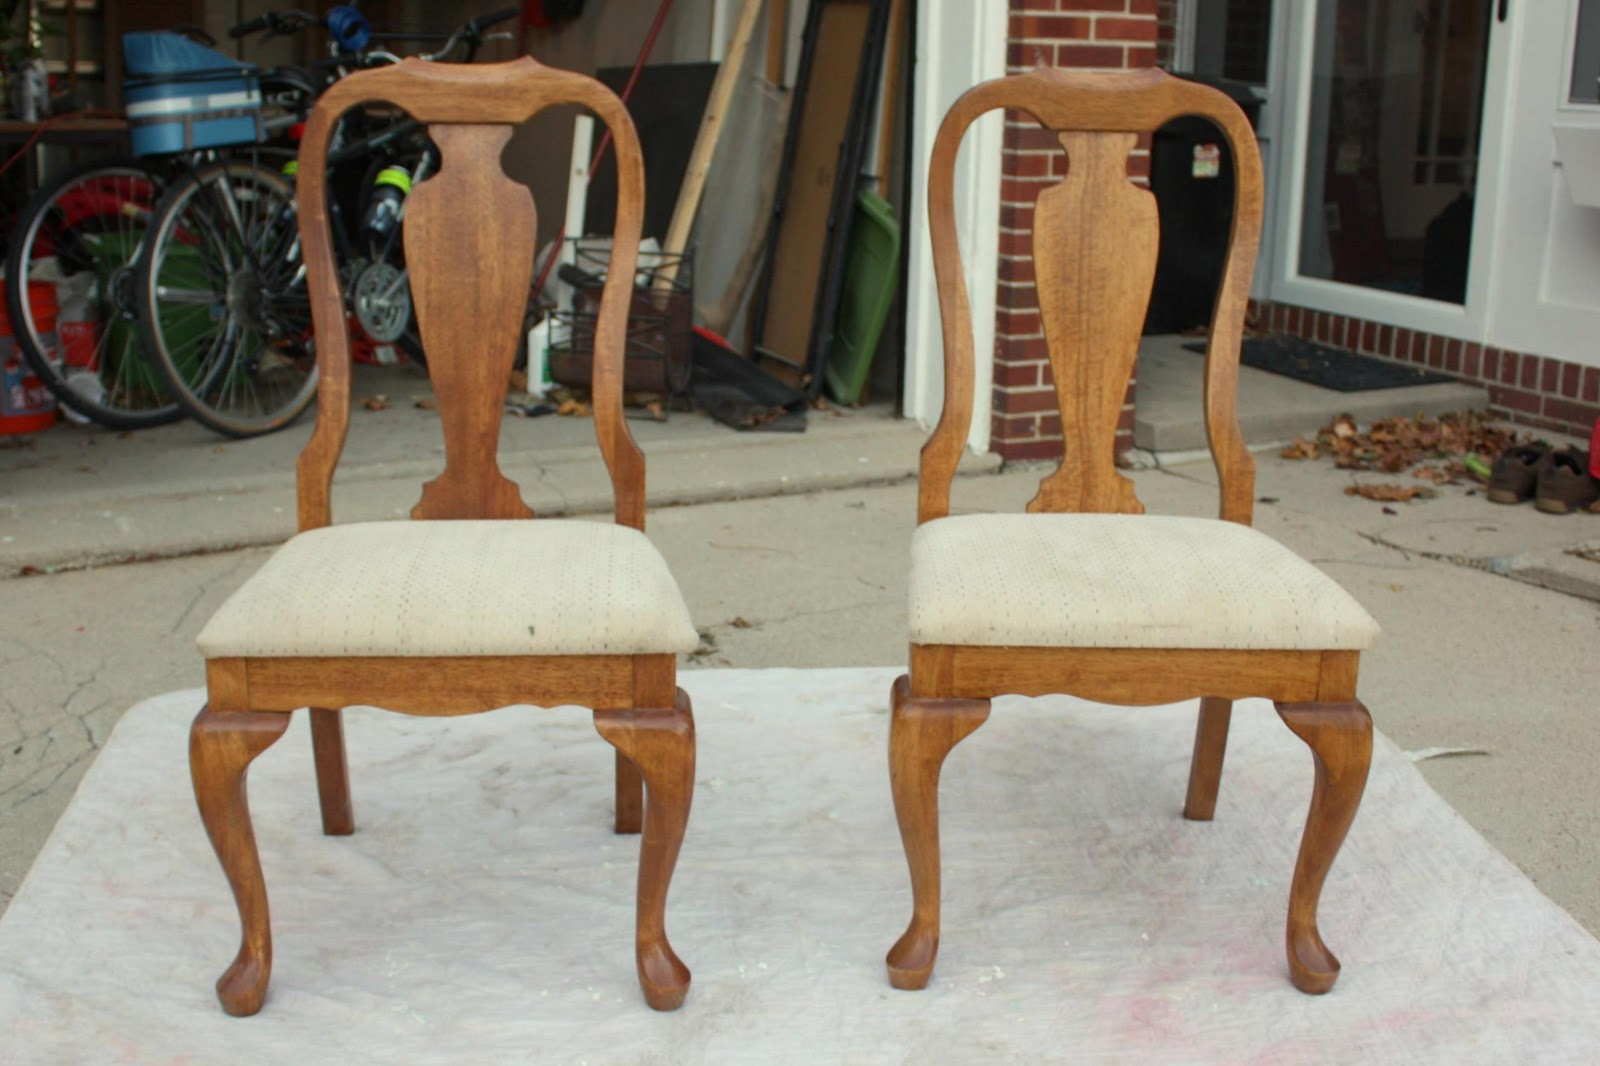 Chairs For Sale Craigslist Stretch Chair Covers In South Africa Russet Street Reno Recovering My